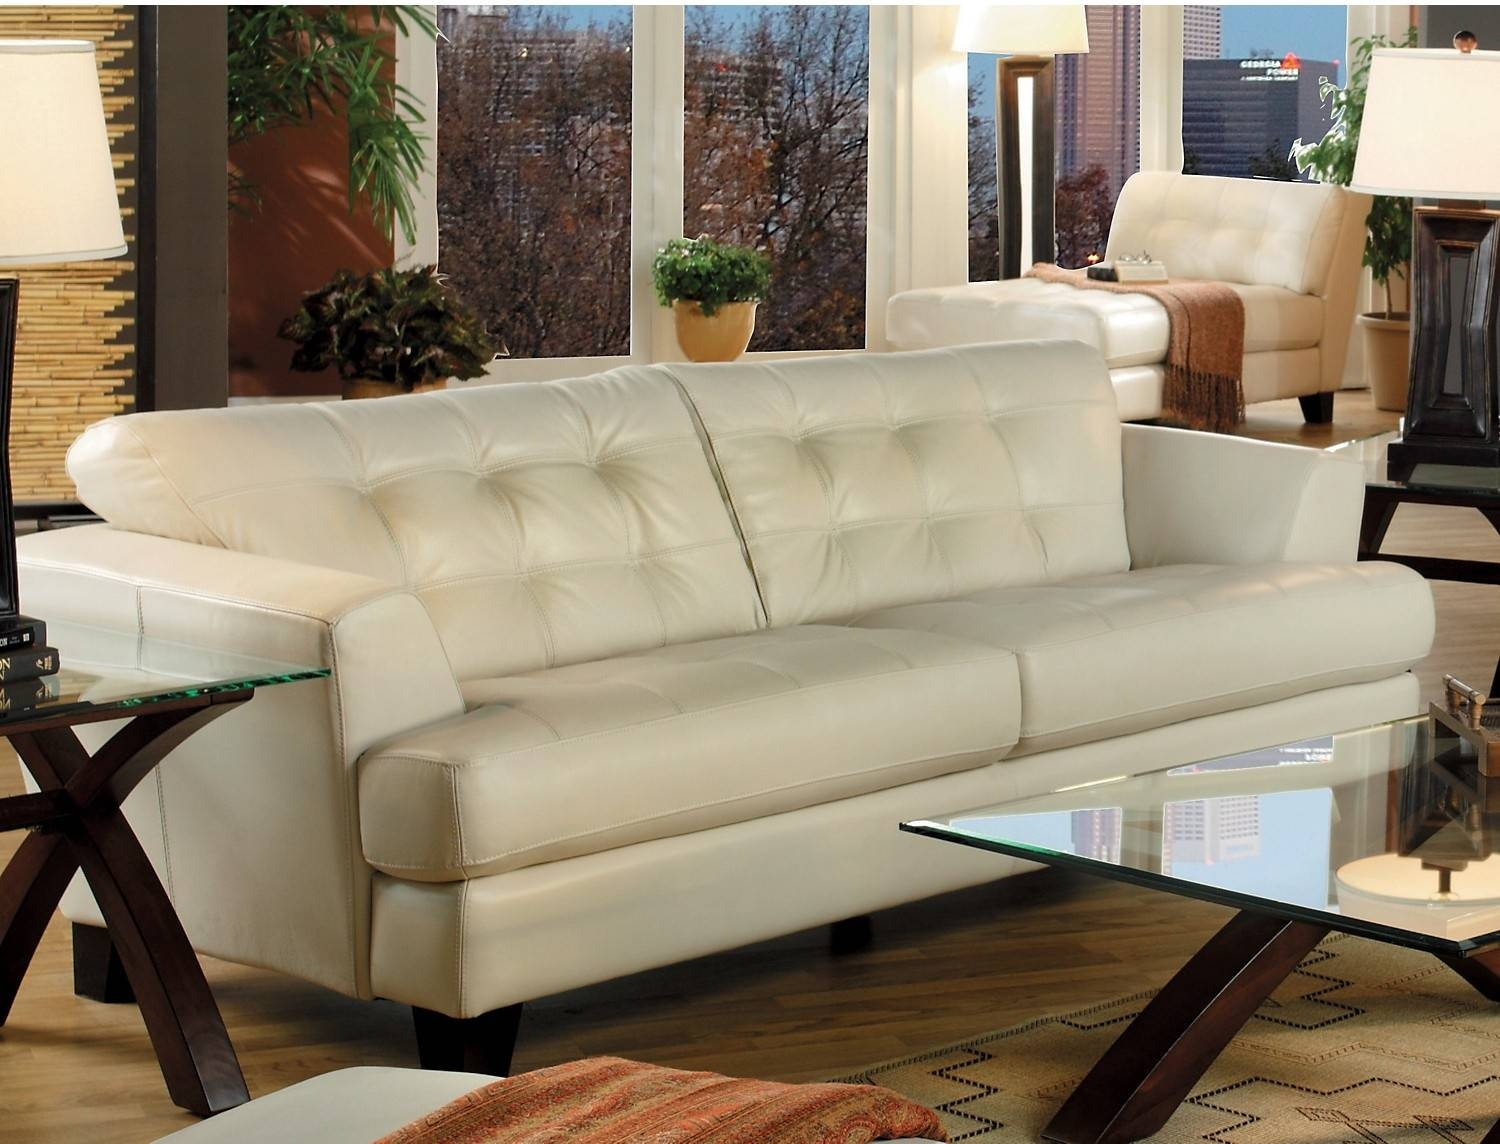 cindy crawford bellingham sofa reviews salon chair home valencia brokeasshome